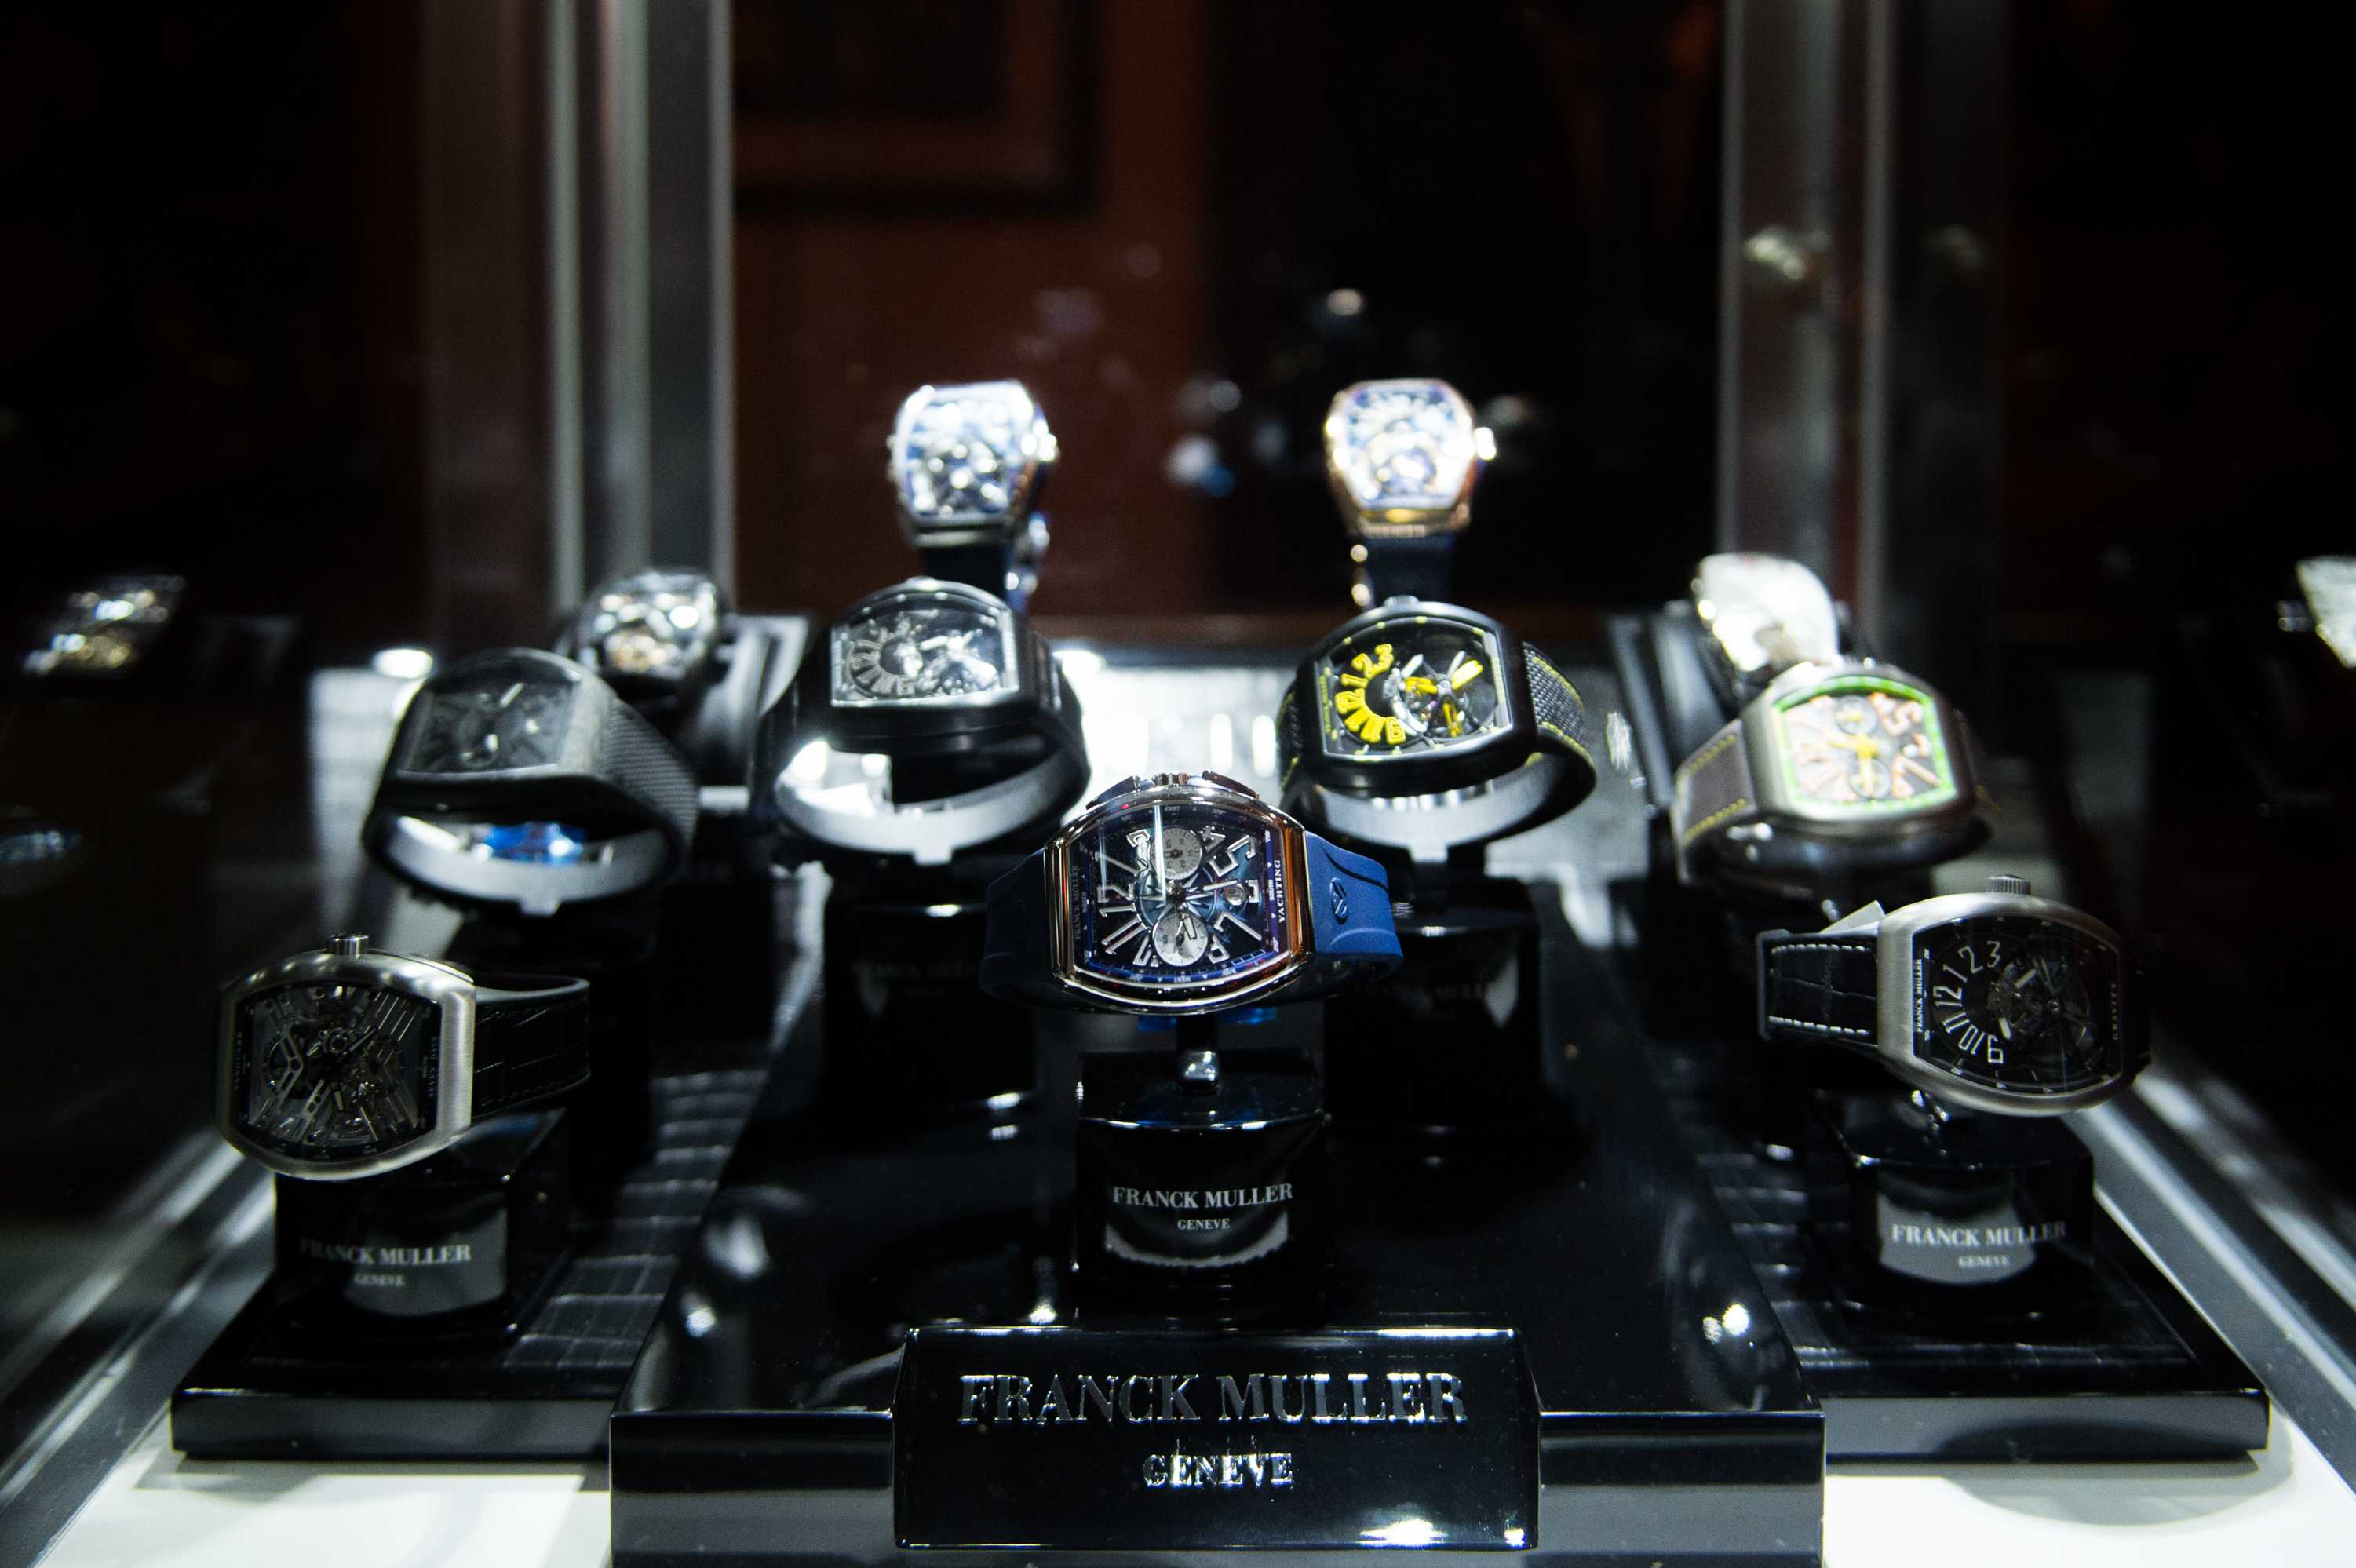 Frank Muller Timepieces